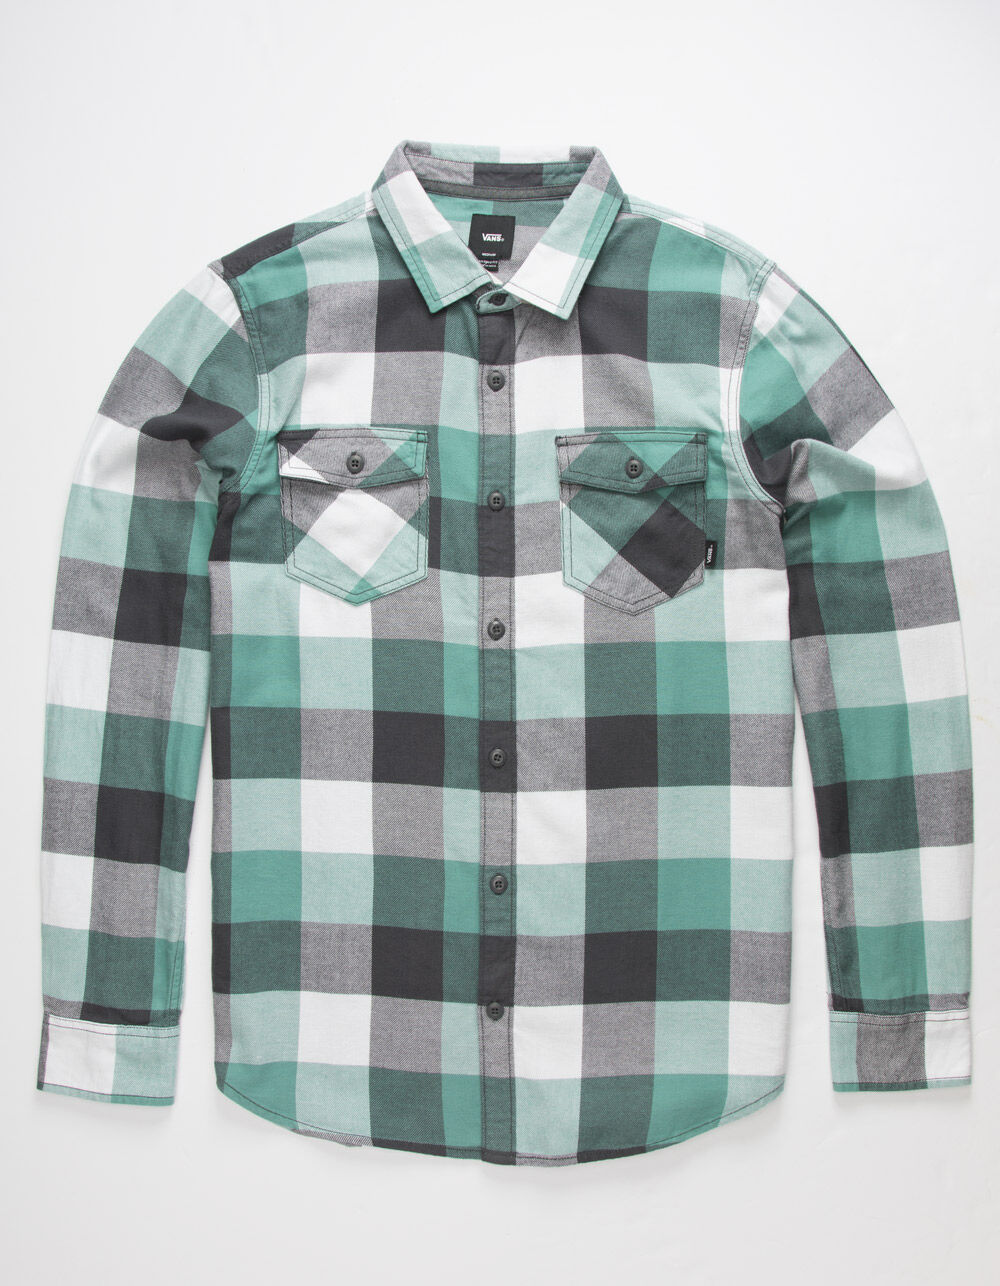 UPC 679894066845 product image for VANS Box Flannel Shirt | upcitemdb.com